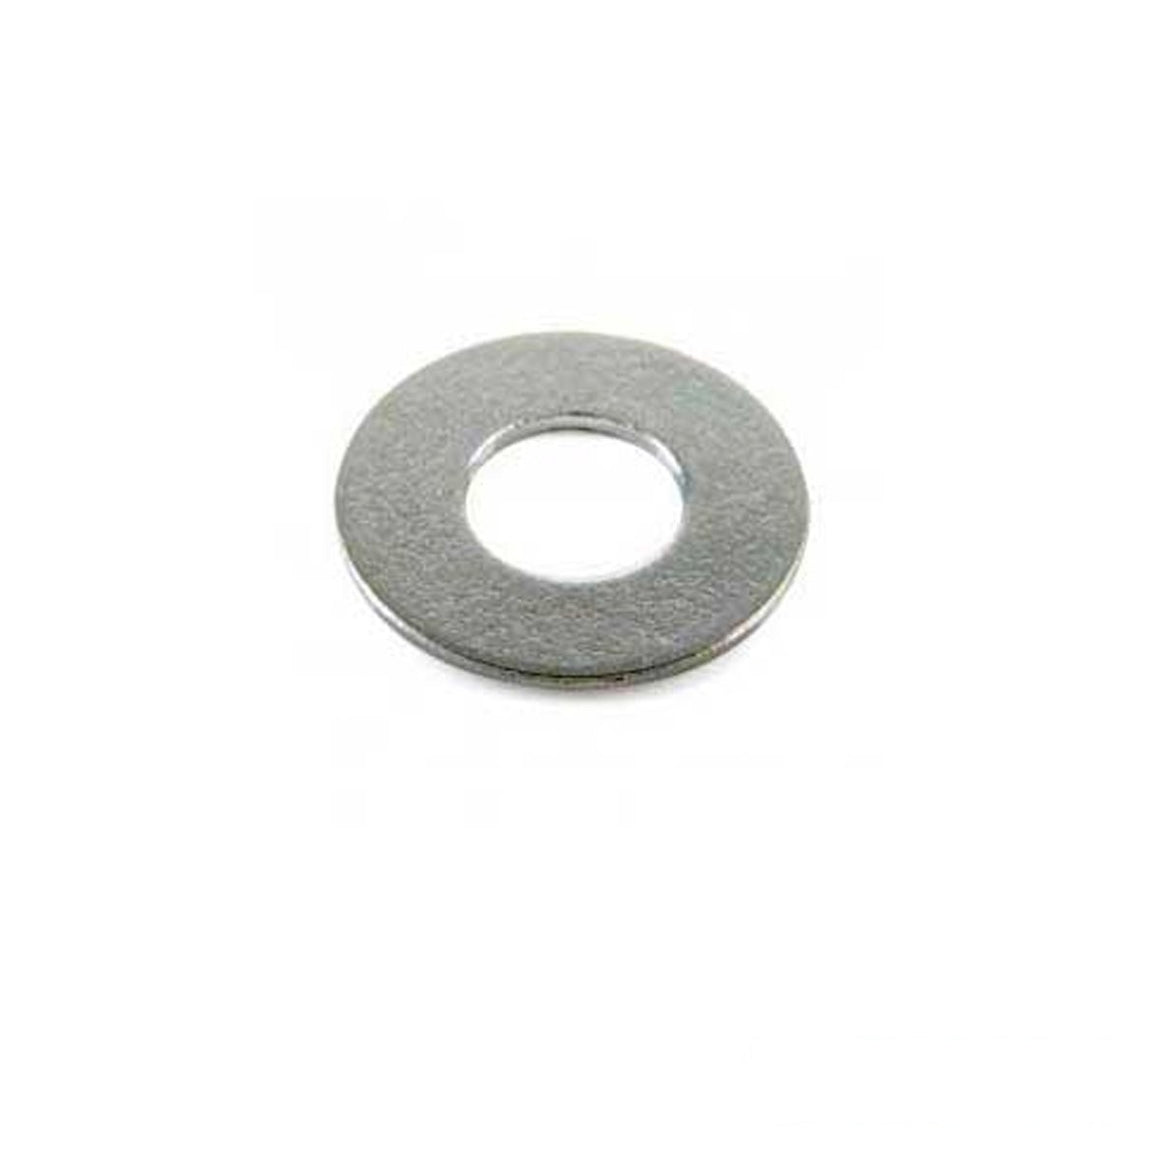 0-80 Stainless Steel Washers